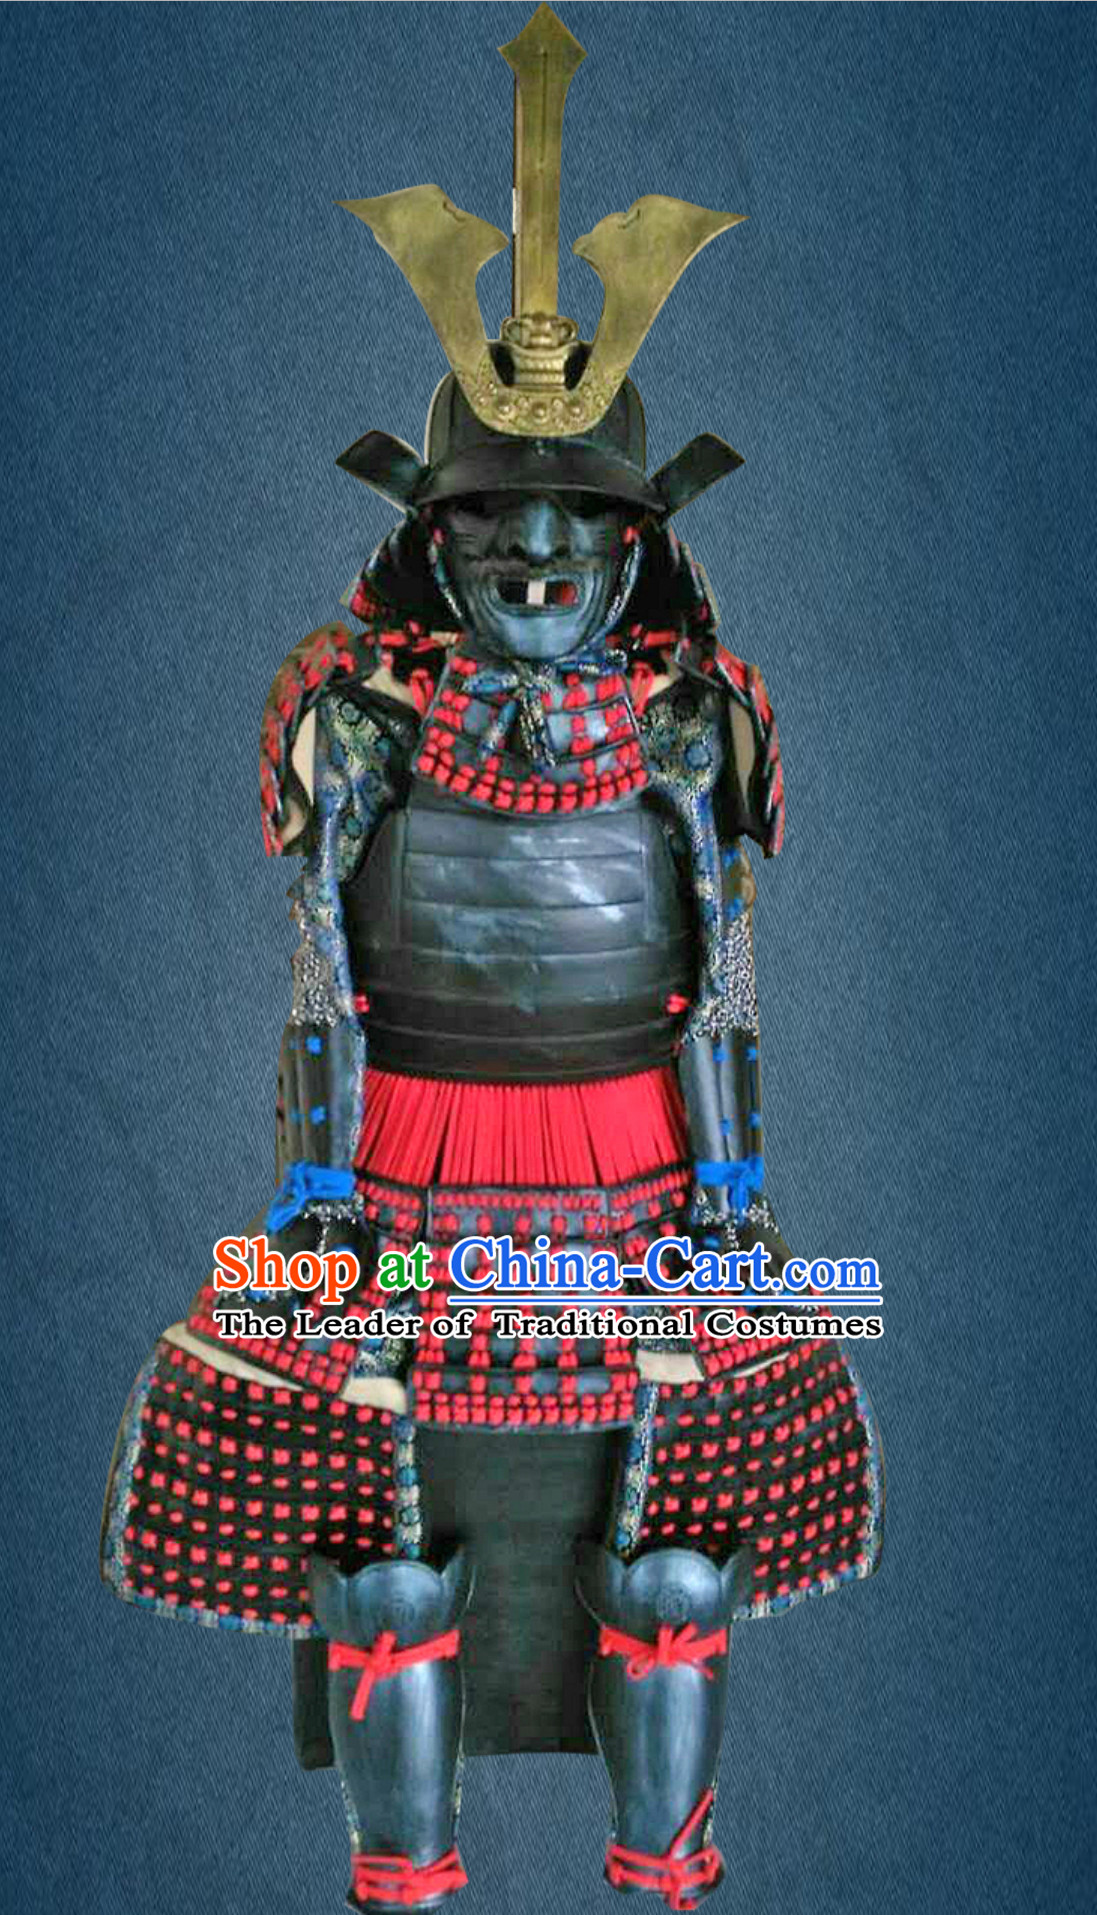 Authentic Japanese Samurai Armor for Sale